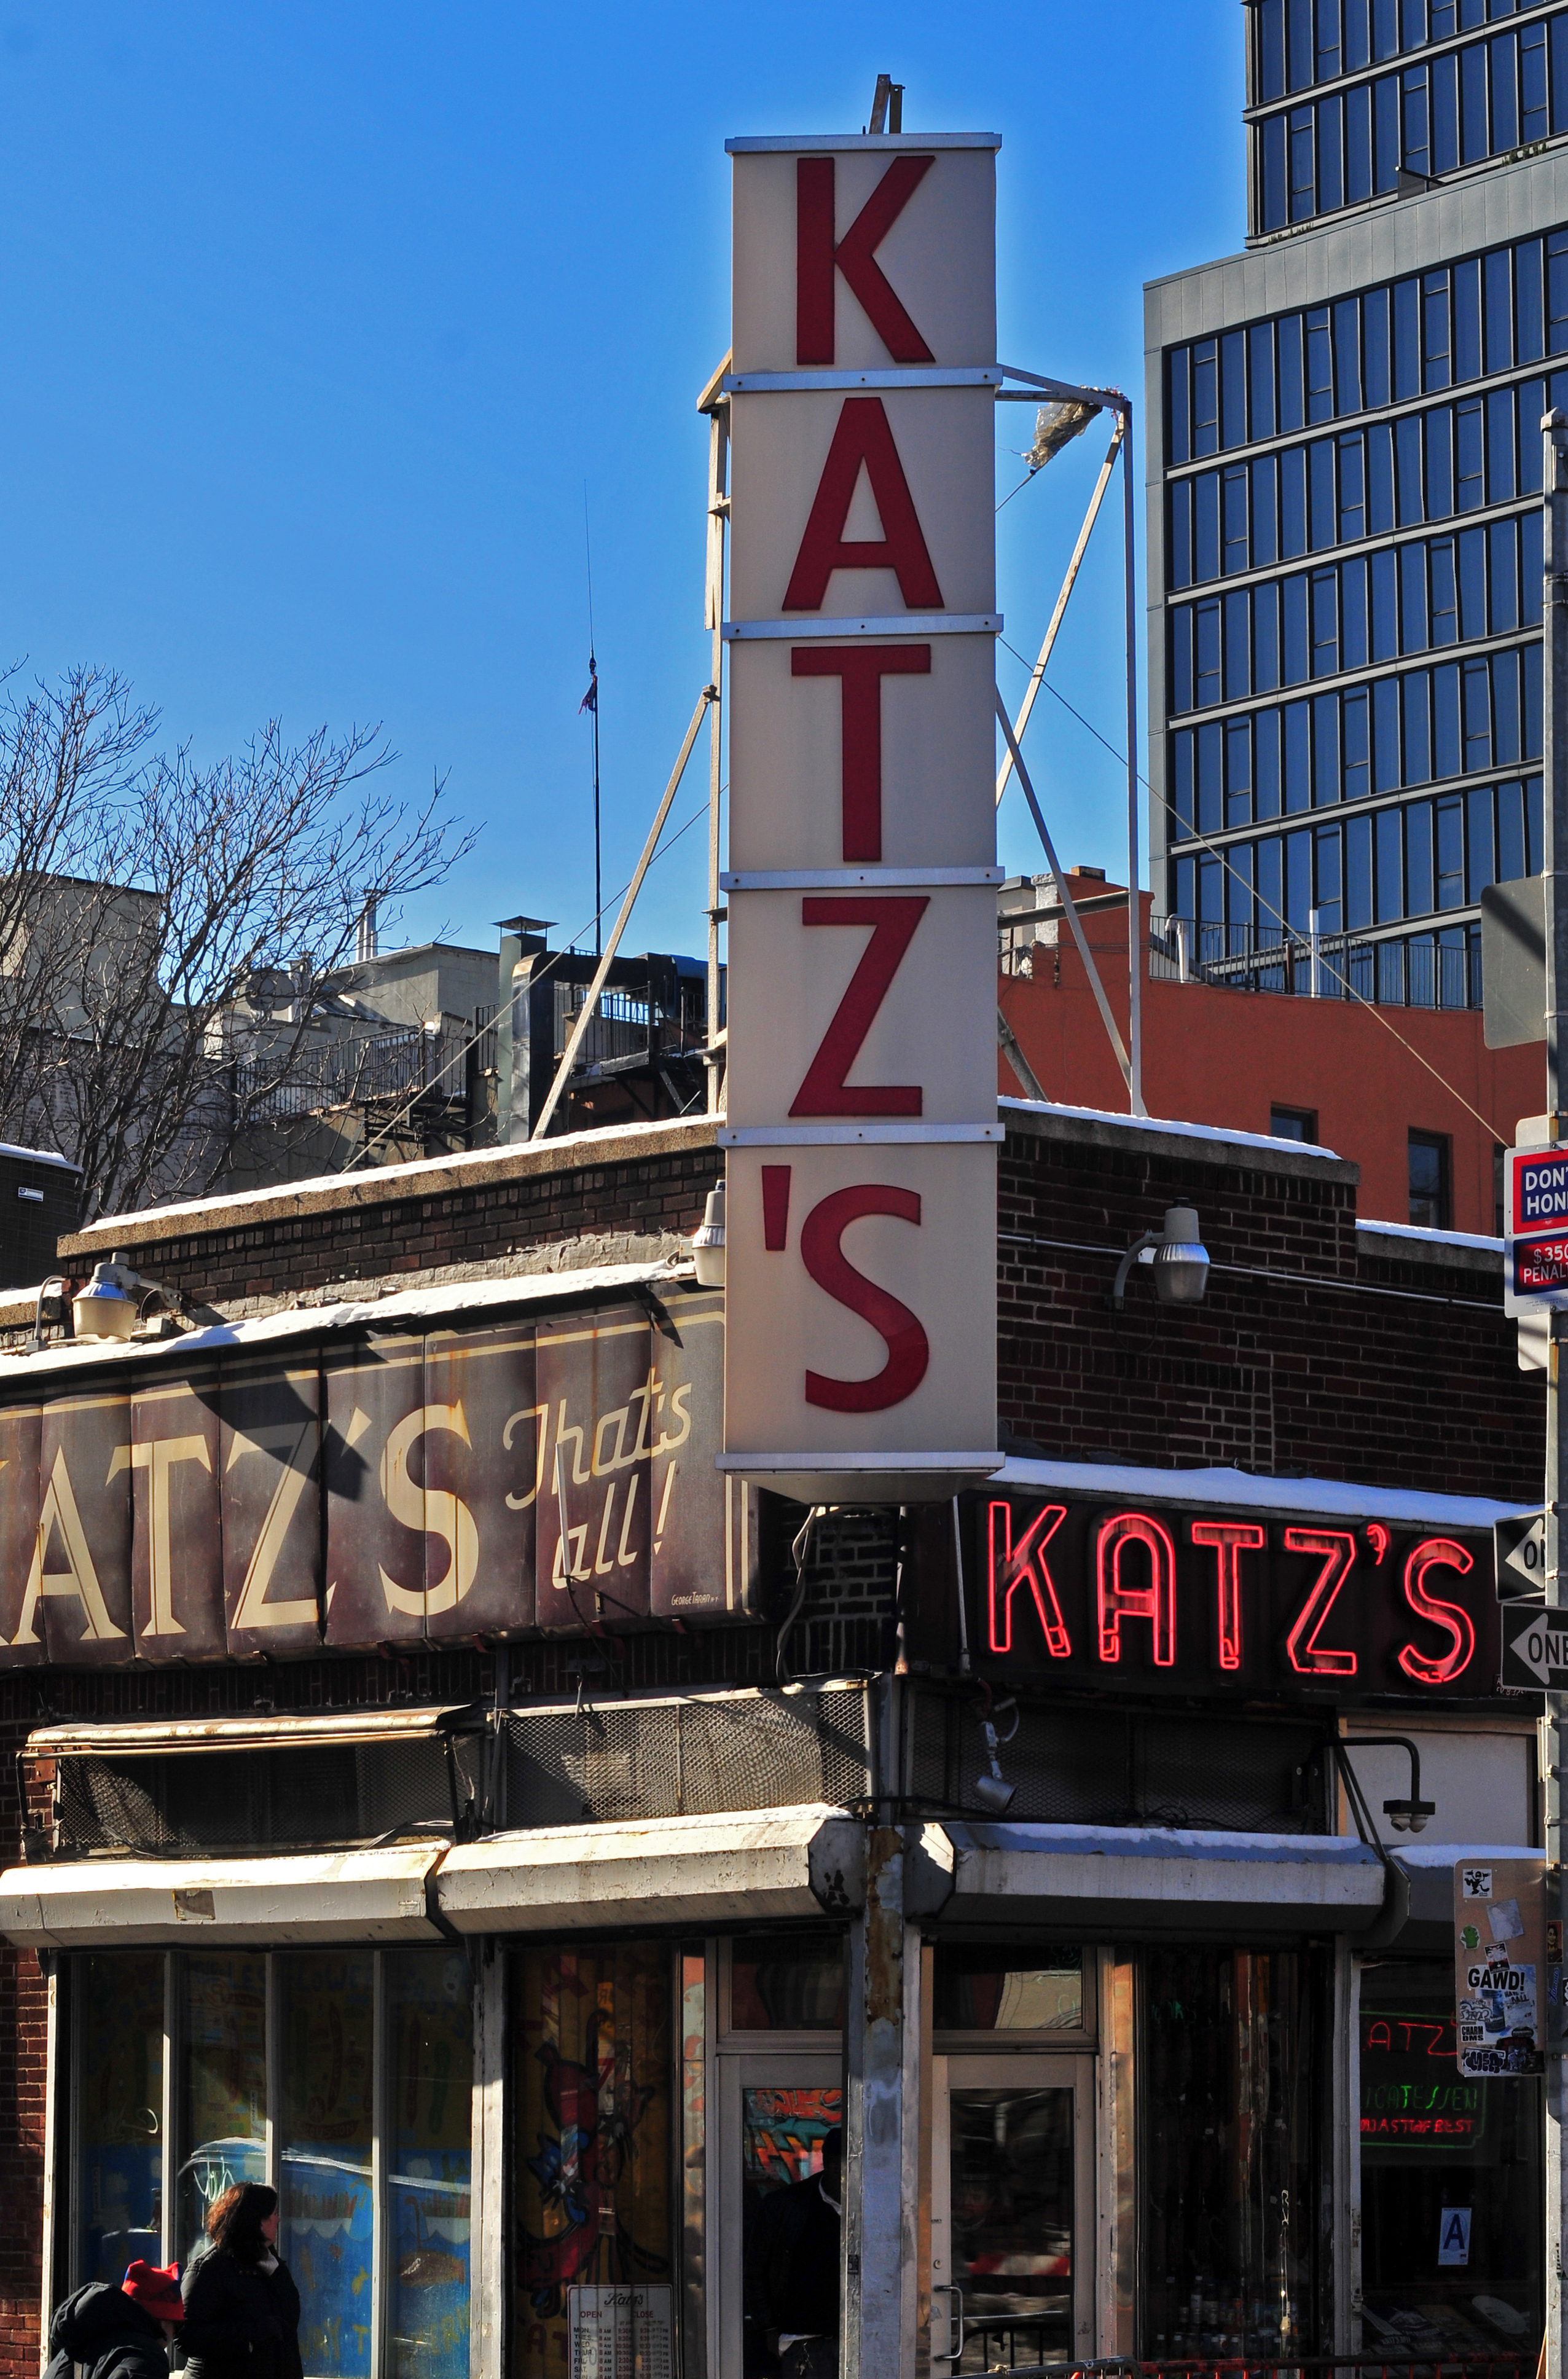 A photo of the exterior and signboard of Kat'z Deli